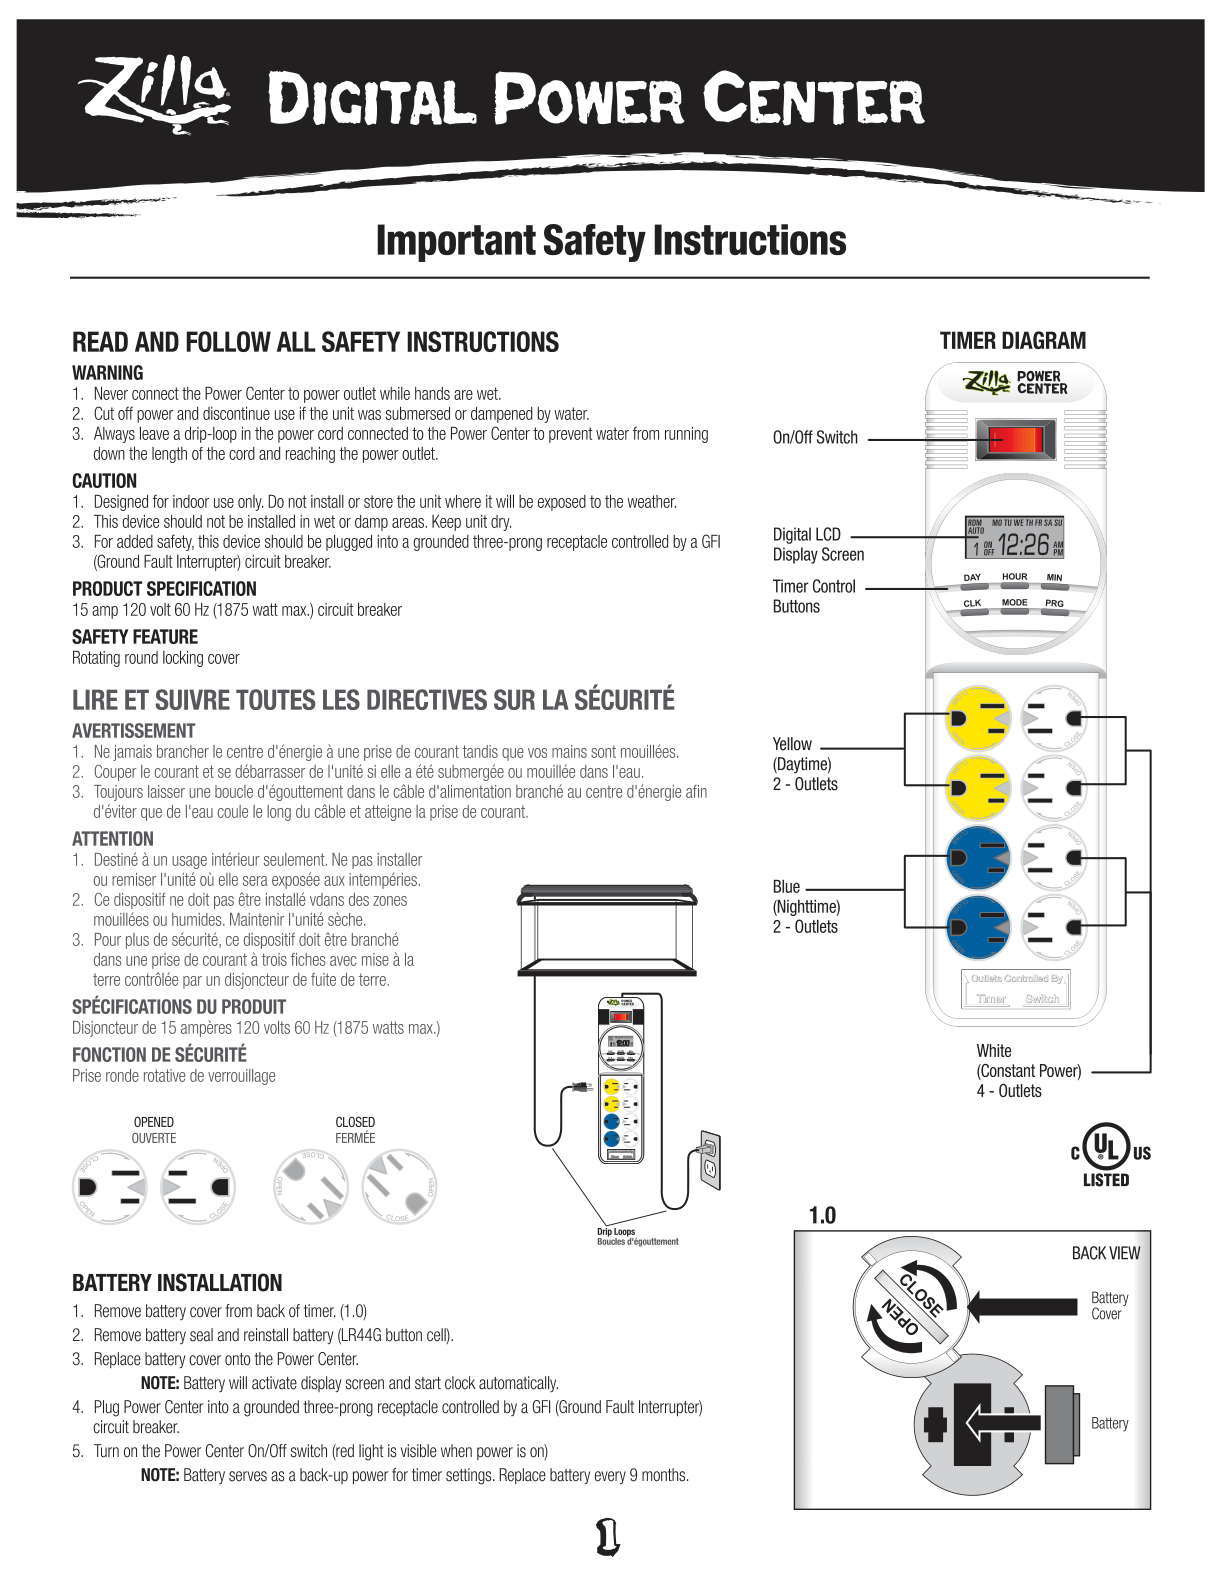 Digital Power Center Instructions